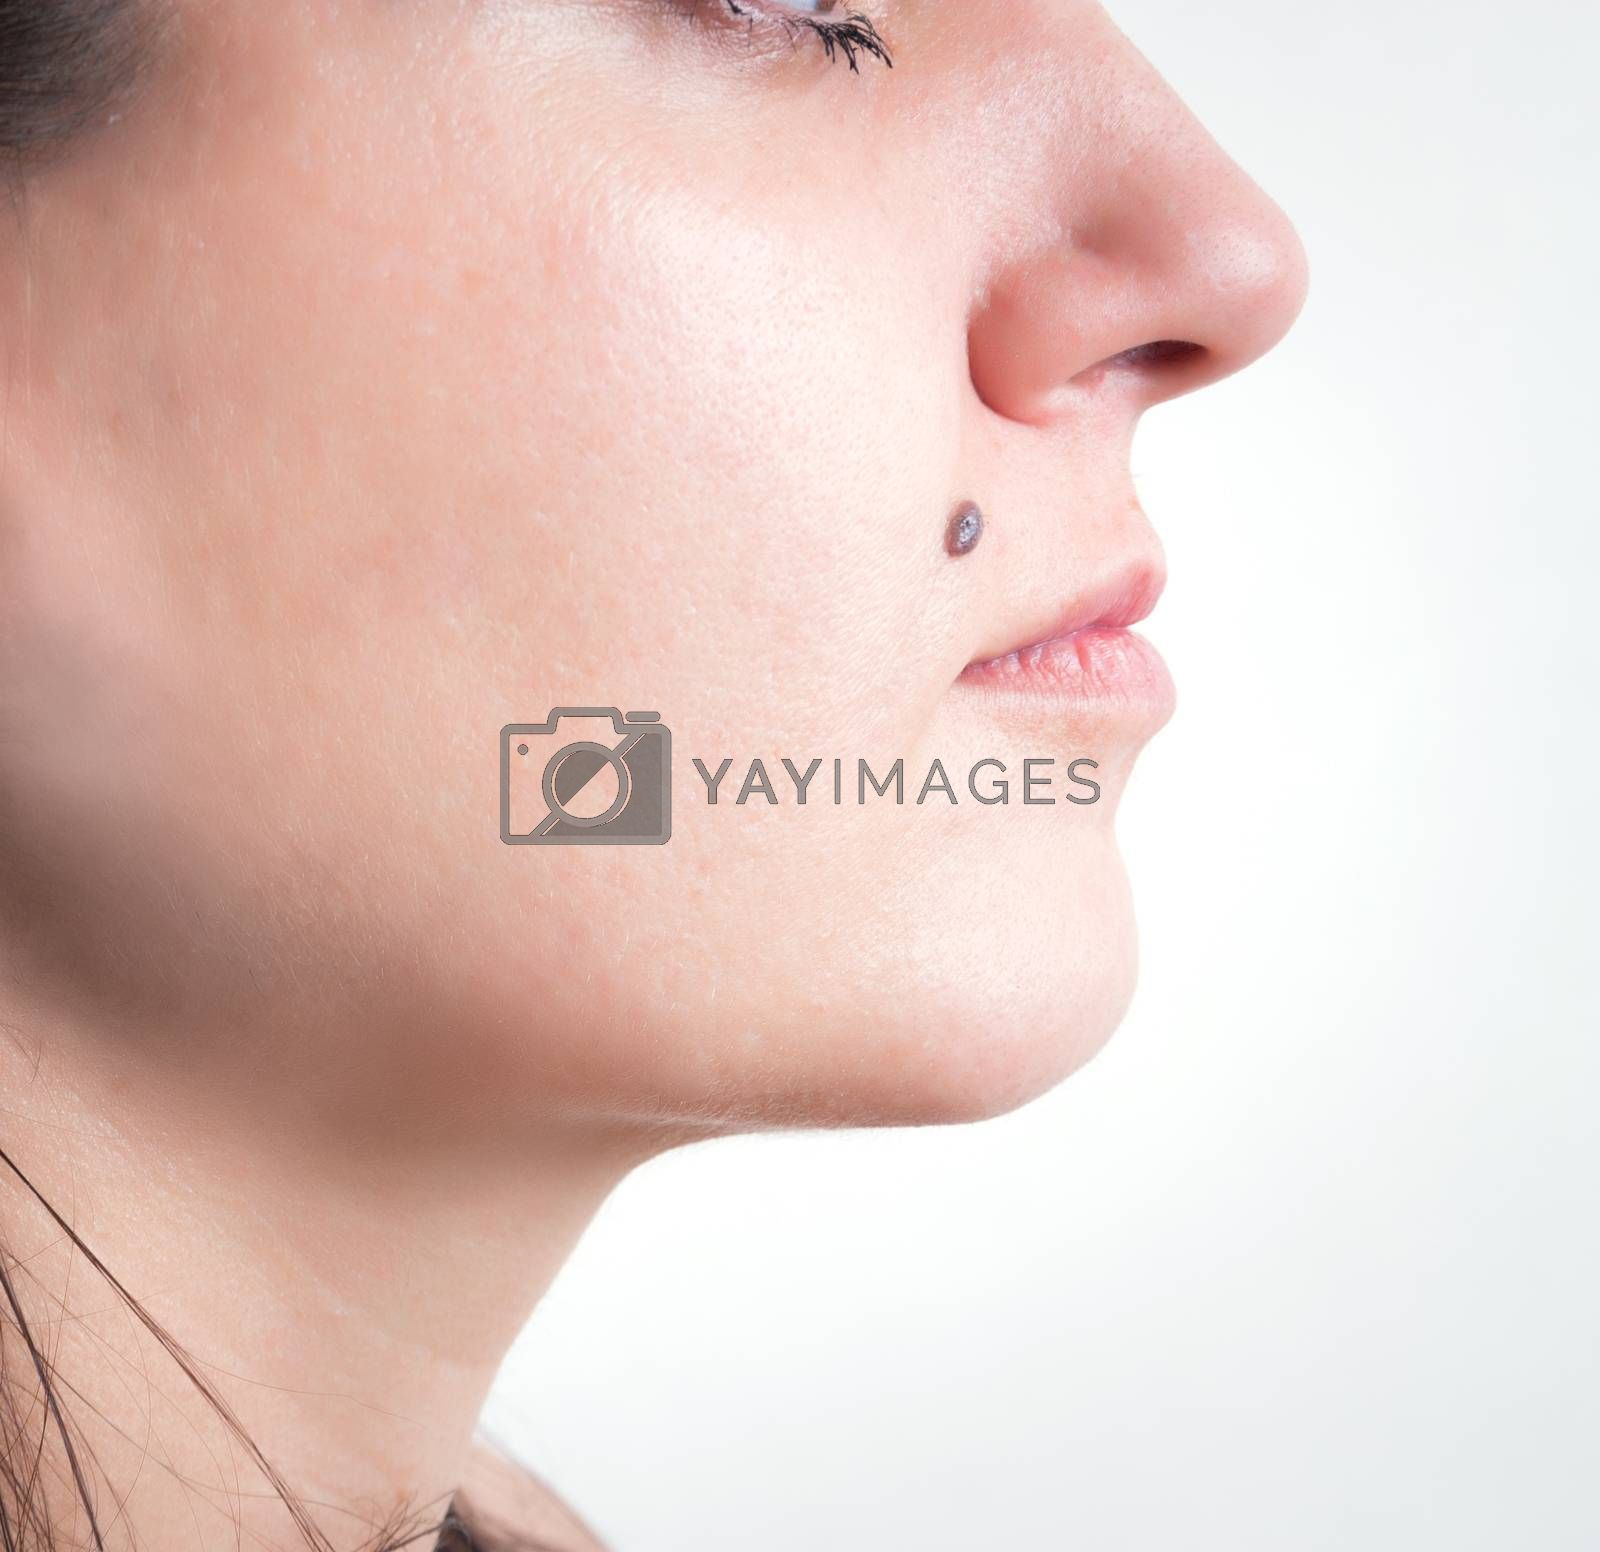 Mole on the face of woman